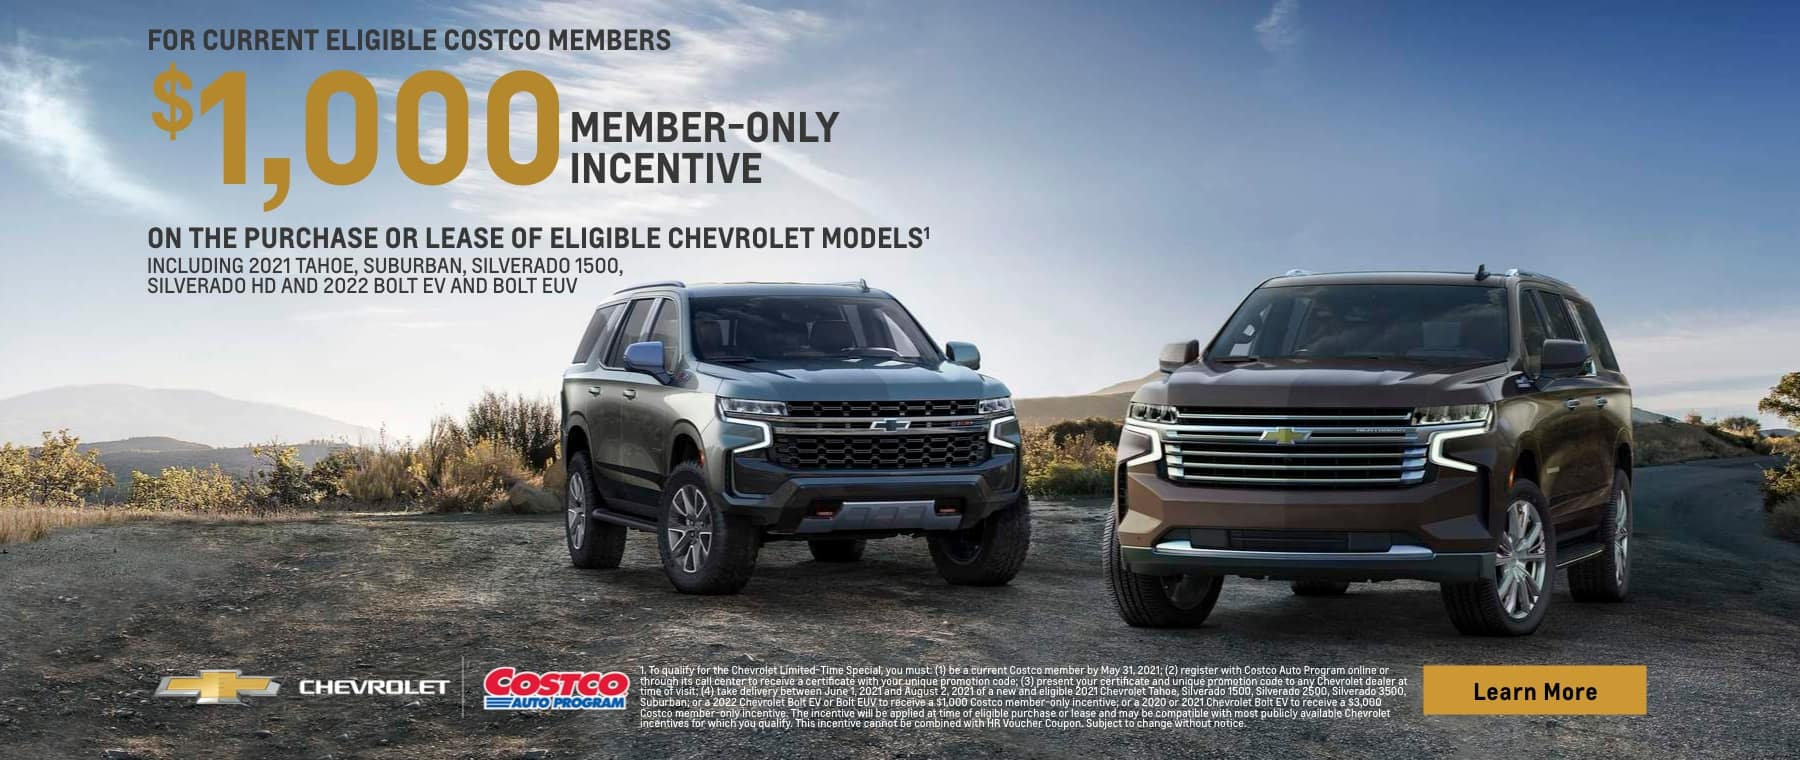 for current eligible costco members $1,000 member-only incentive on the purchase or lease of eligible chevrolet models including 2021 tahoe, suburban, silverado 1500, silverado hd and 2022 bolt ev and bolt euv chevrolet costco bauto program learn more 1. to qualify for the chevrolet limited-time special, you must: (1) be a current costco member by may 31, 2021; (2) register with costco auto program online or through its call center to receive a certificate with your unique promotion code: (3) present your certificate and unique promotion code to any chevrolet dealer at time of visit: (4) take delivery between june 1, 2021 and august 2, 2021 of a new and eligible 2021 chevrolet tahoe, silverado 1500, silverado 2500, silverado 3500, suburban; or a 2022 chevrolet bolt ev or bolt euv to receive a $1,000 costco member-only incentive; or a 2020 or 2021 chevrolet bolt ev to receive a $3,000 costco member-only incentive. the incentive will be applied at time of eligible purchase or lease and may be compatible with most publicly available chevrolet incentives for which you qualify. this incentive cannot be combined with hr voucher coupon. subject to change without notice.